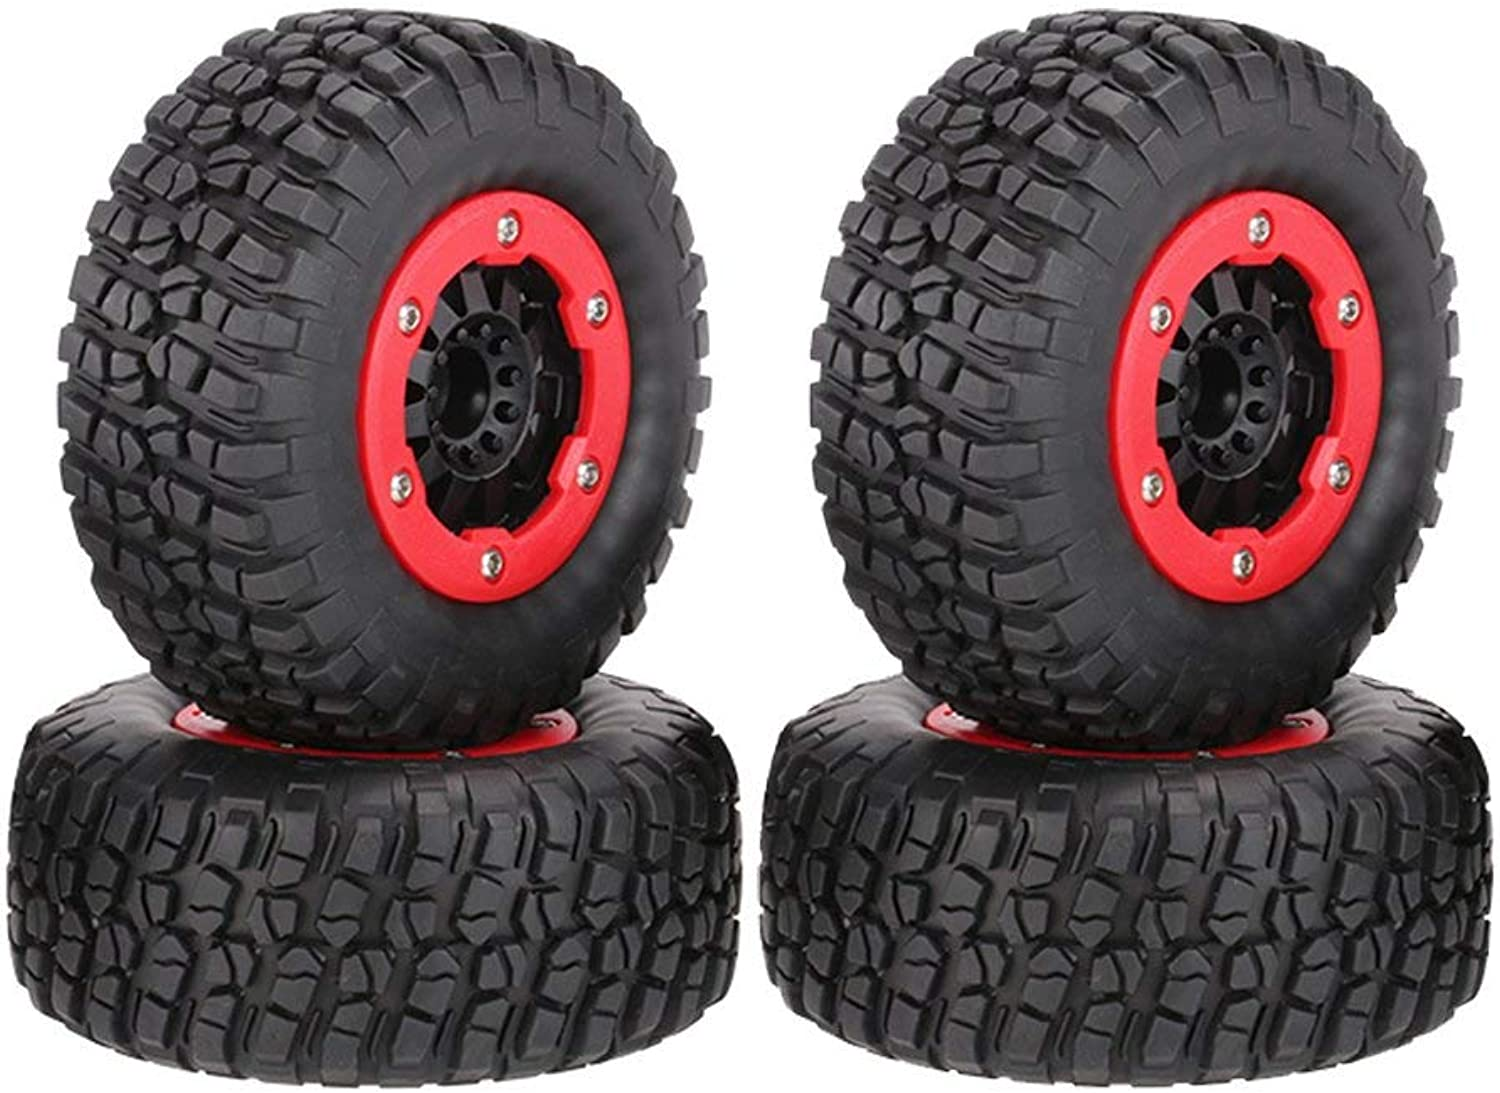 WONFAST 4PCS High Performance 110mm 1 10 Short Course Truck Tires with Wheel Rim for All 1 10 RC Terrain